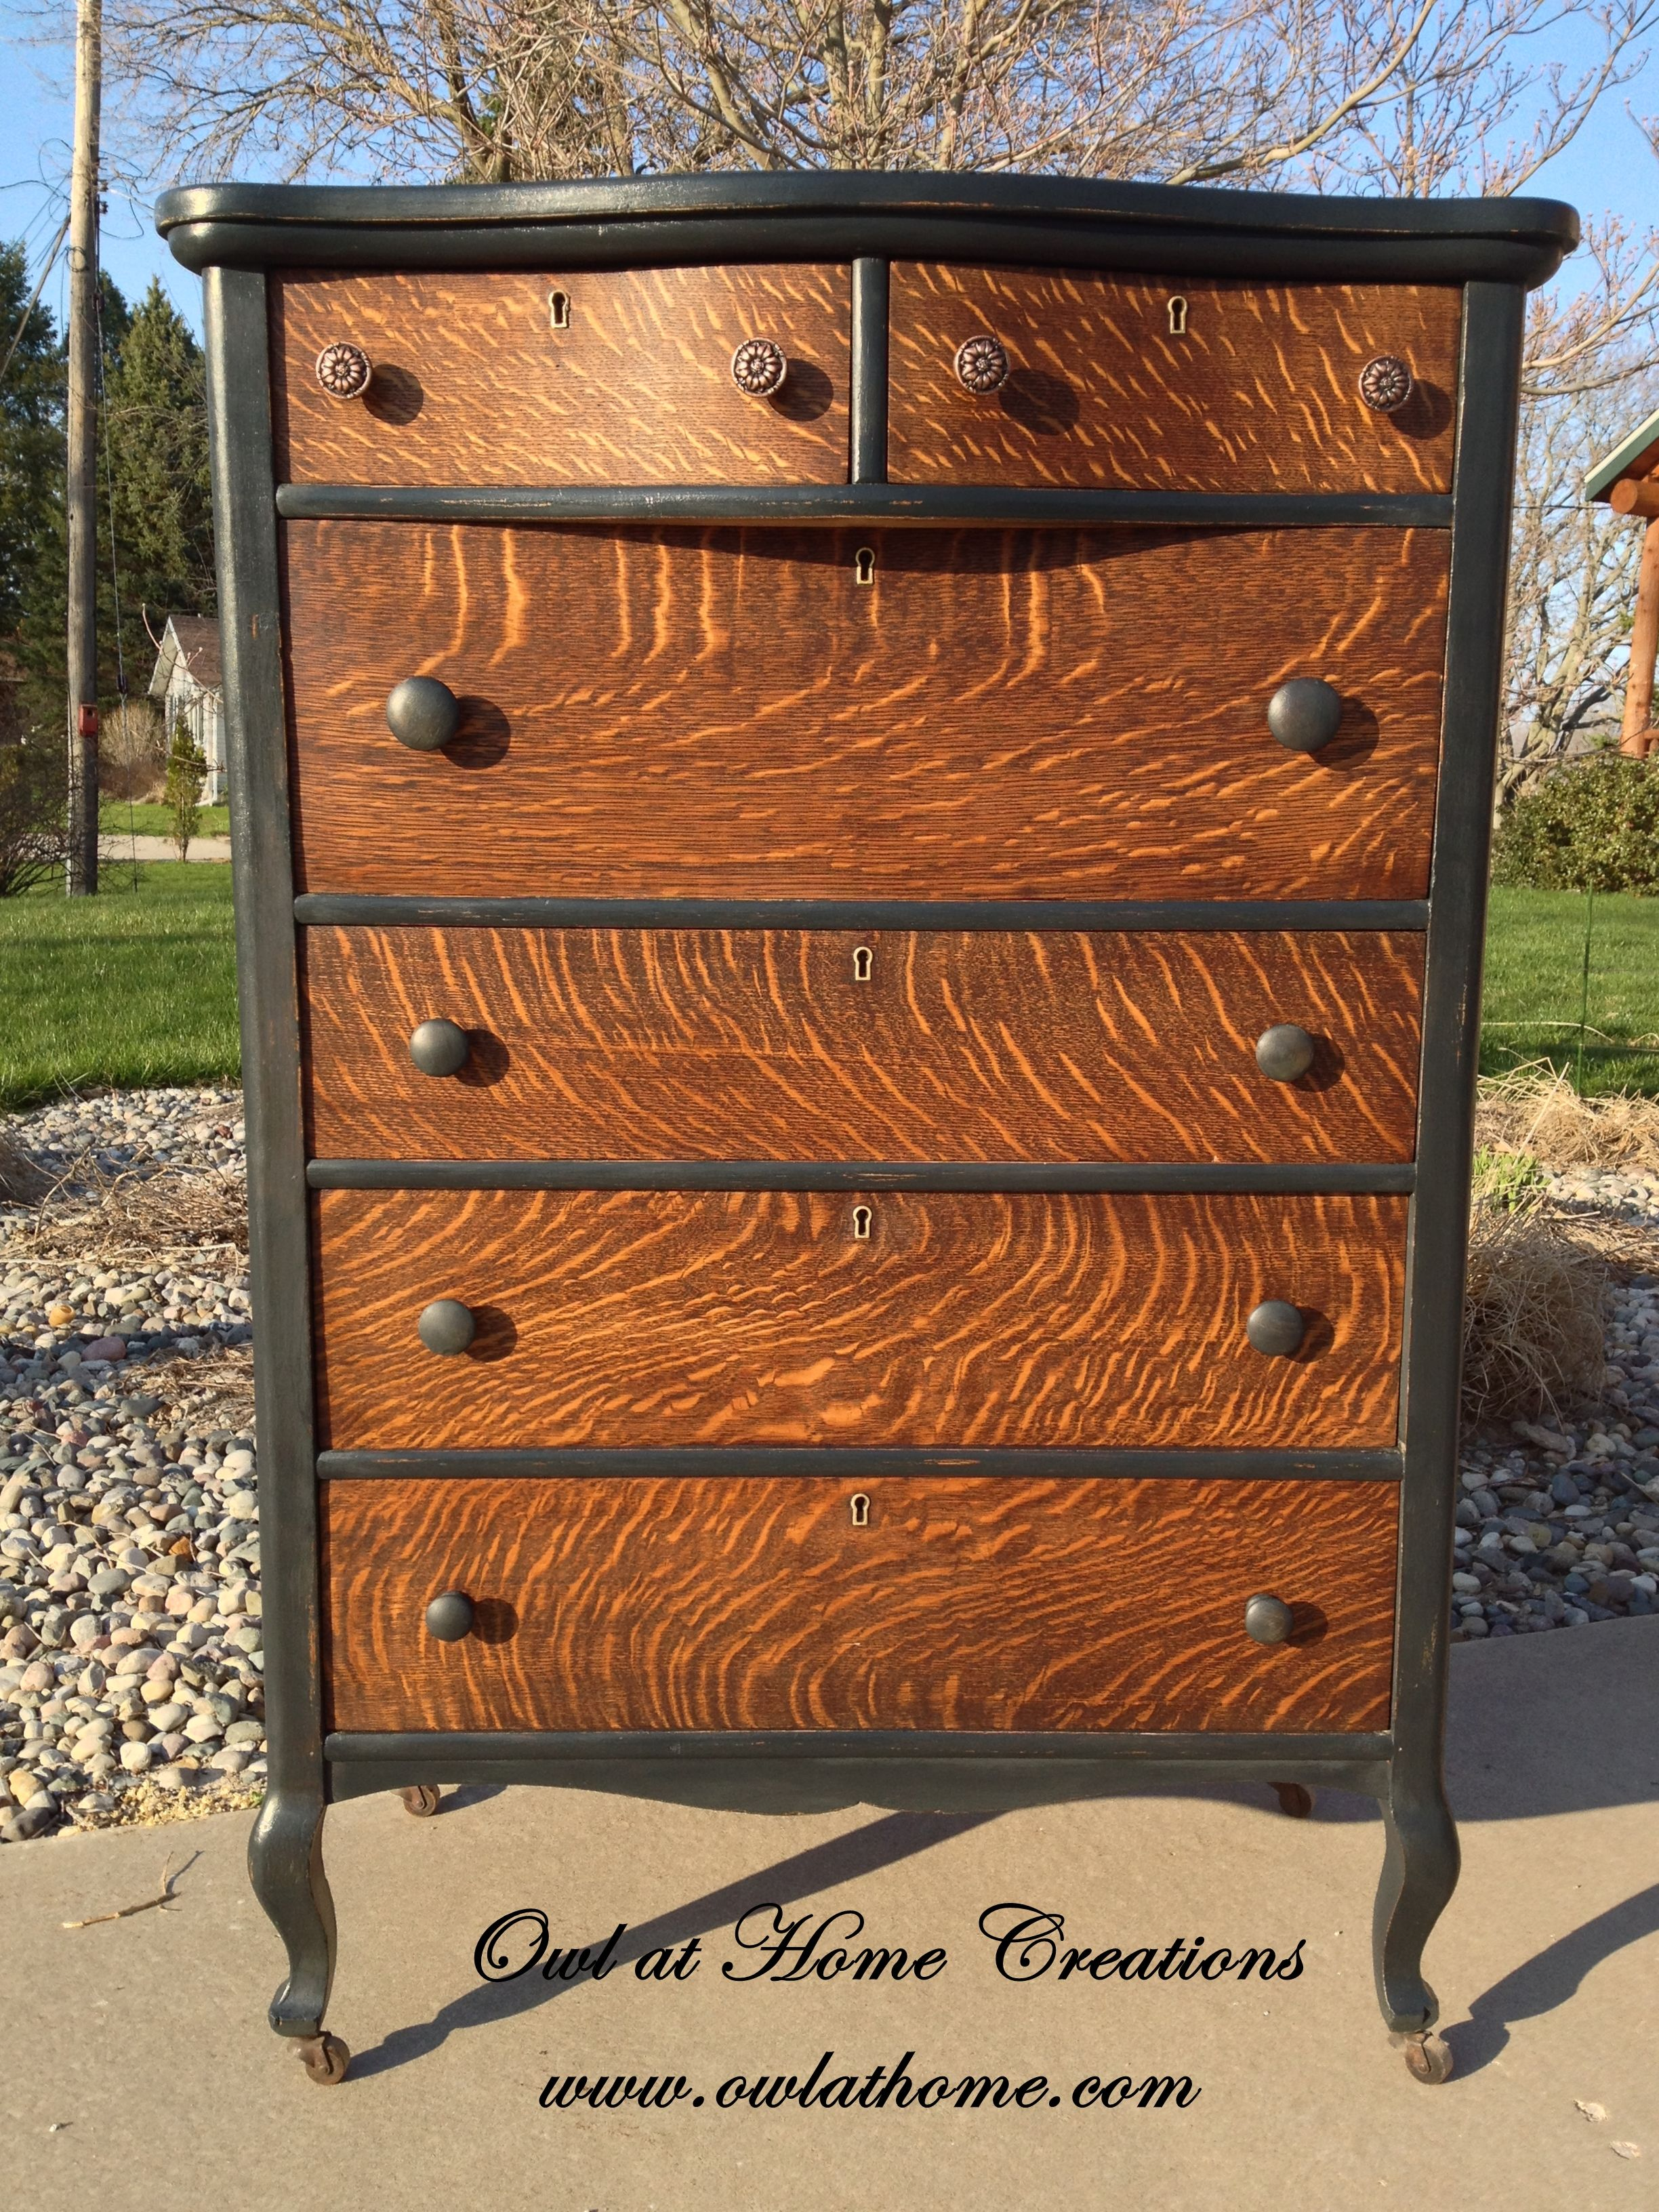 Quarter Sawn Oak Antique Dresser Painted With Maison Blanche Wrought Iron